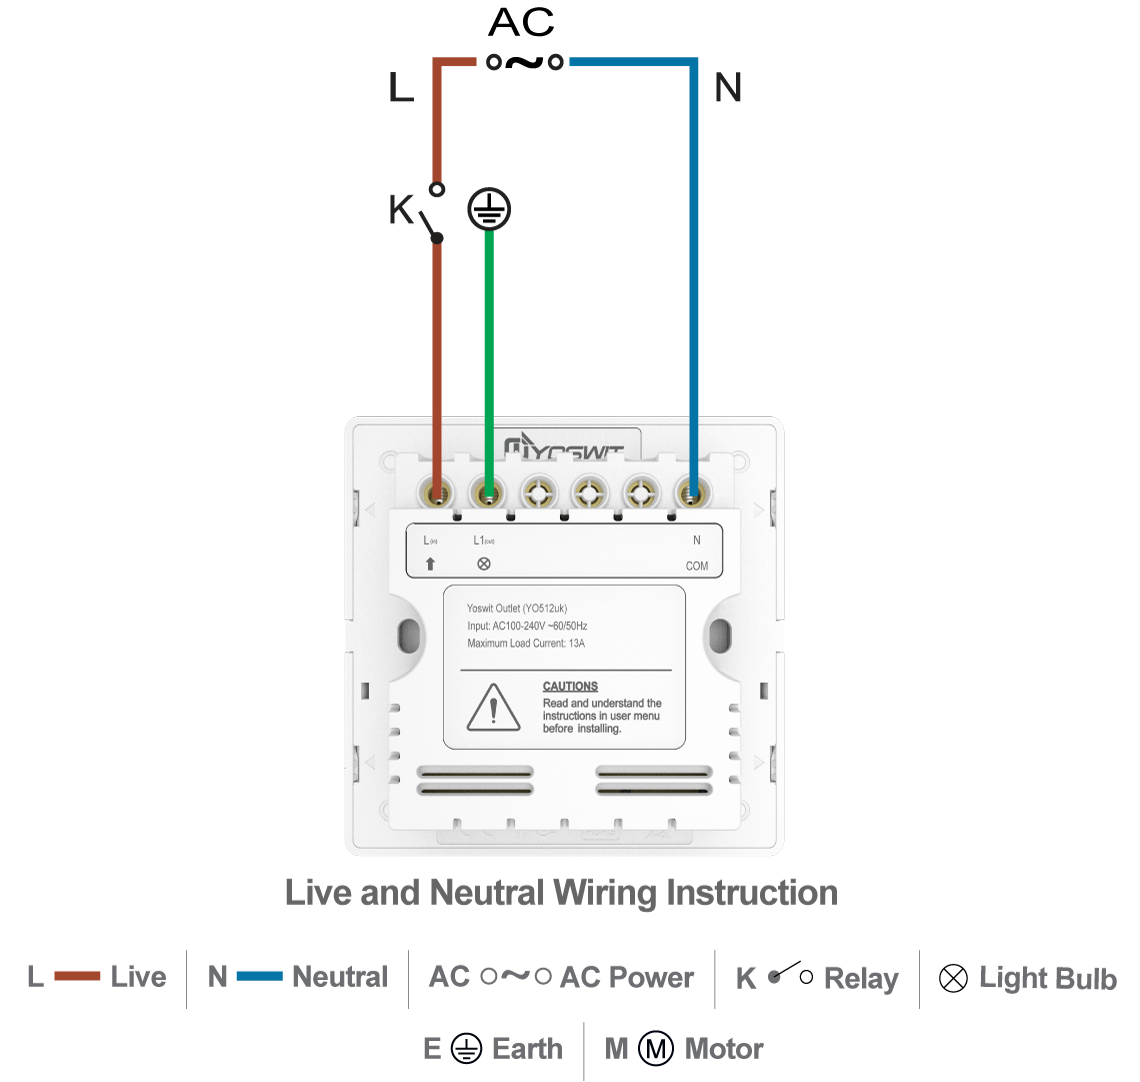 Smart Outlet Electrical Wiring Uk Failure To Connect The Ground Wire Will Result In An Unsafe Installation That Could Lead Personal Injury